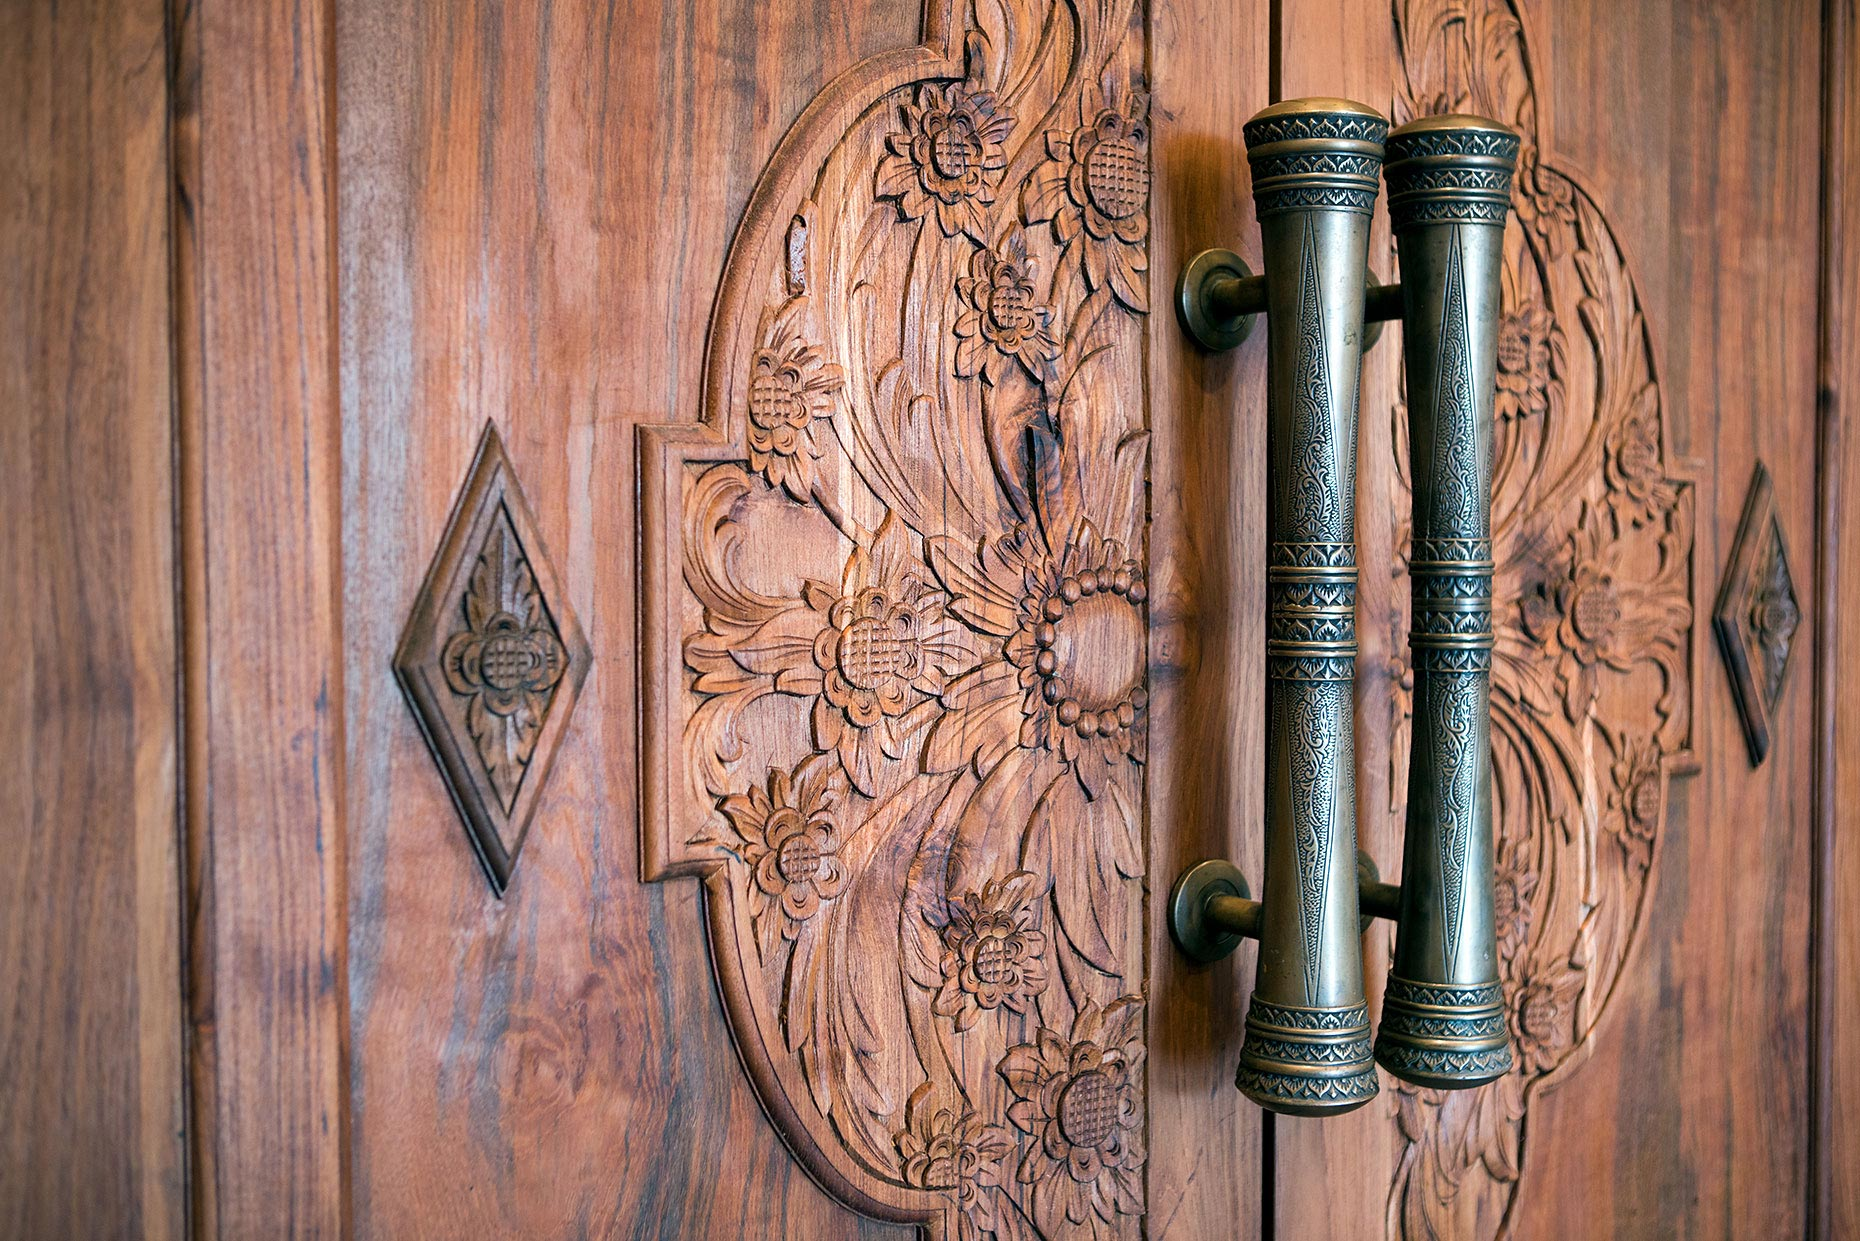 Arna_Spa_Balinese_Doors_Detail